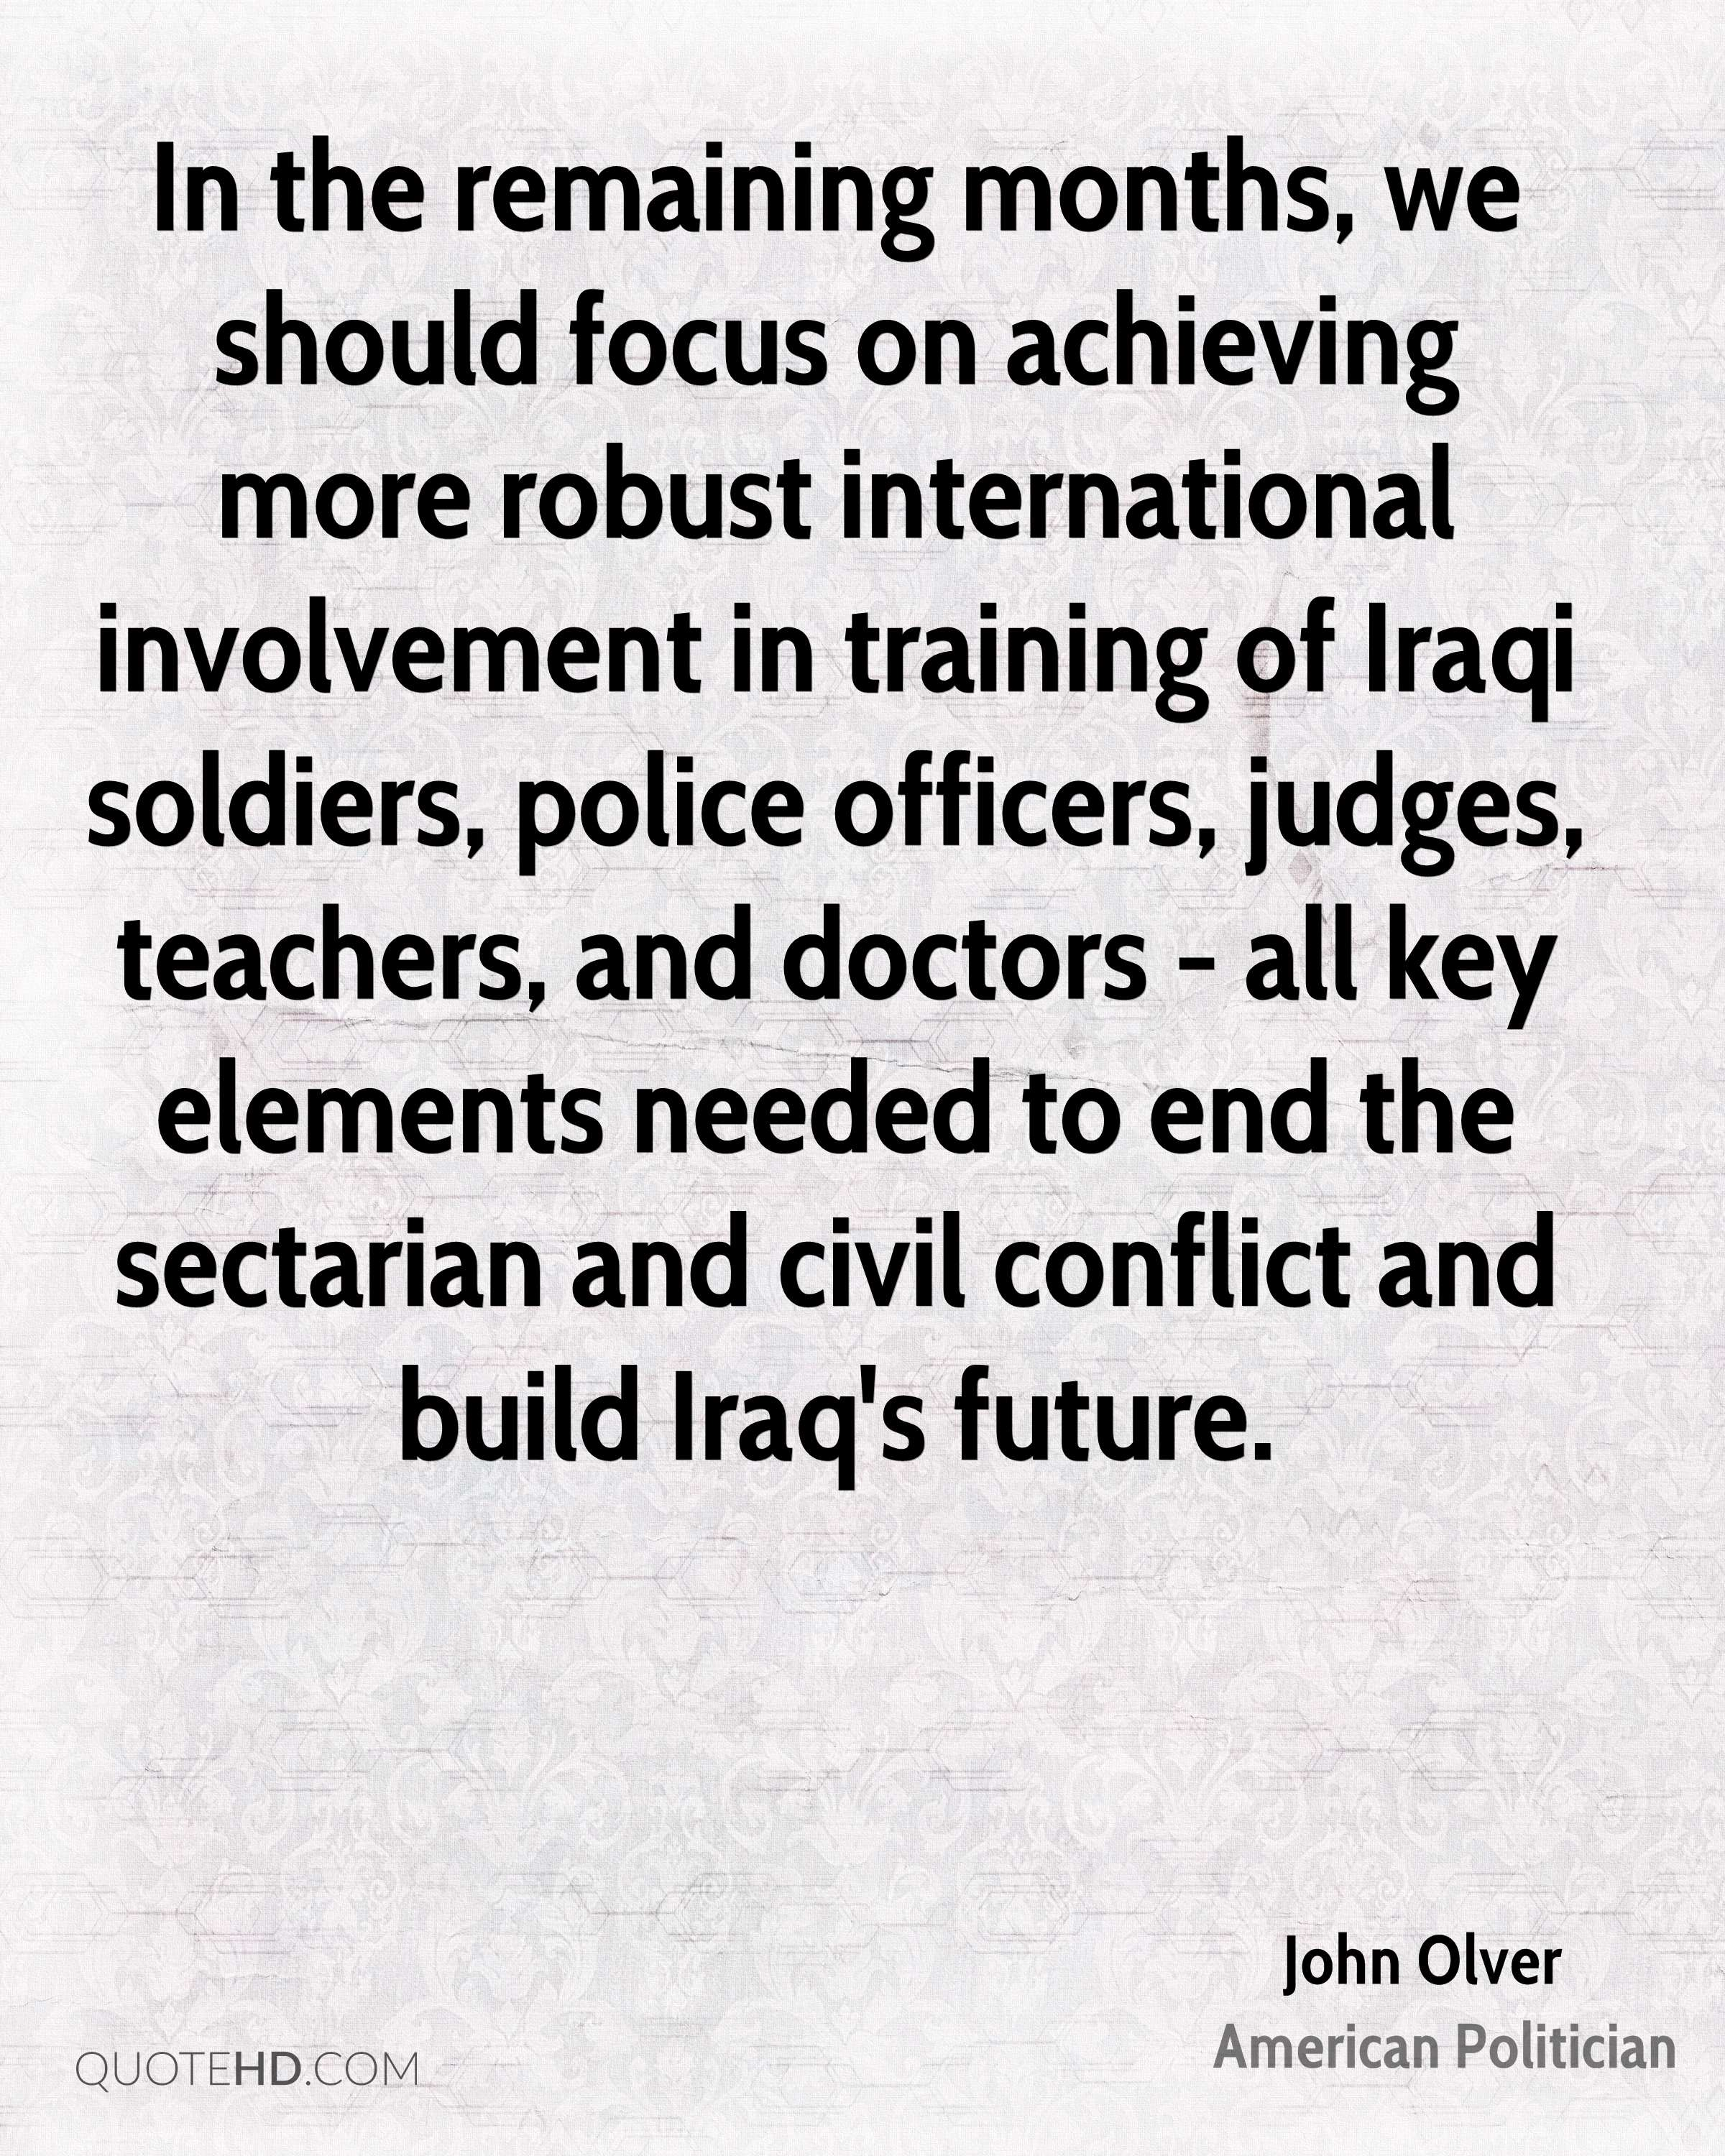 In the remaining months, we should focus on achieving more robust international involvement in training of Iraqi soldiers, police officers, judges, teachers, and doctors - all key elements needed to end the sectarian and civil conflict and build Iraq's future.